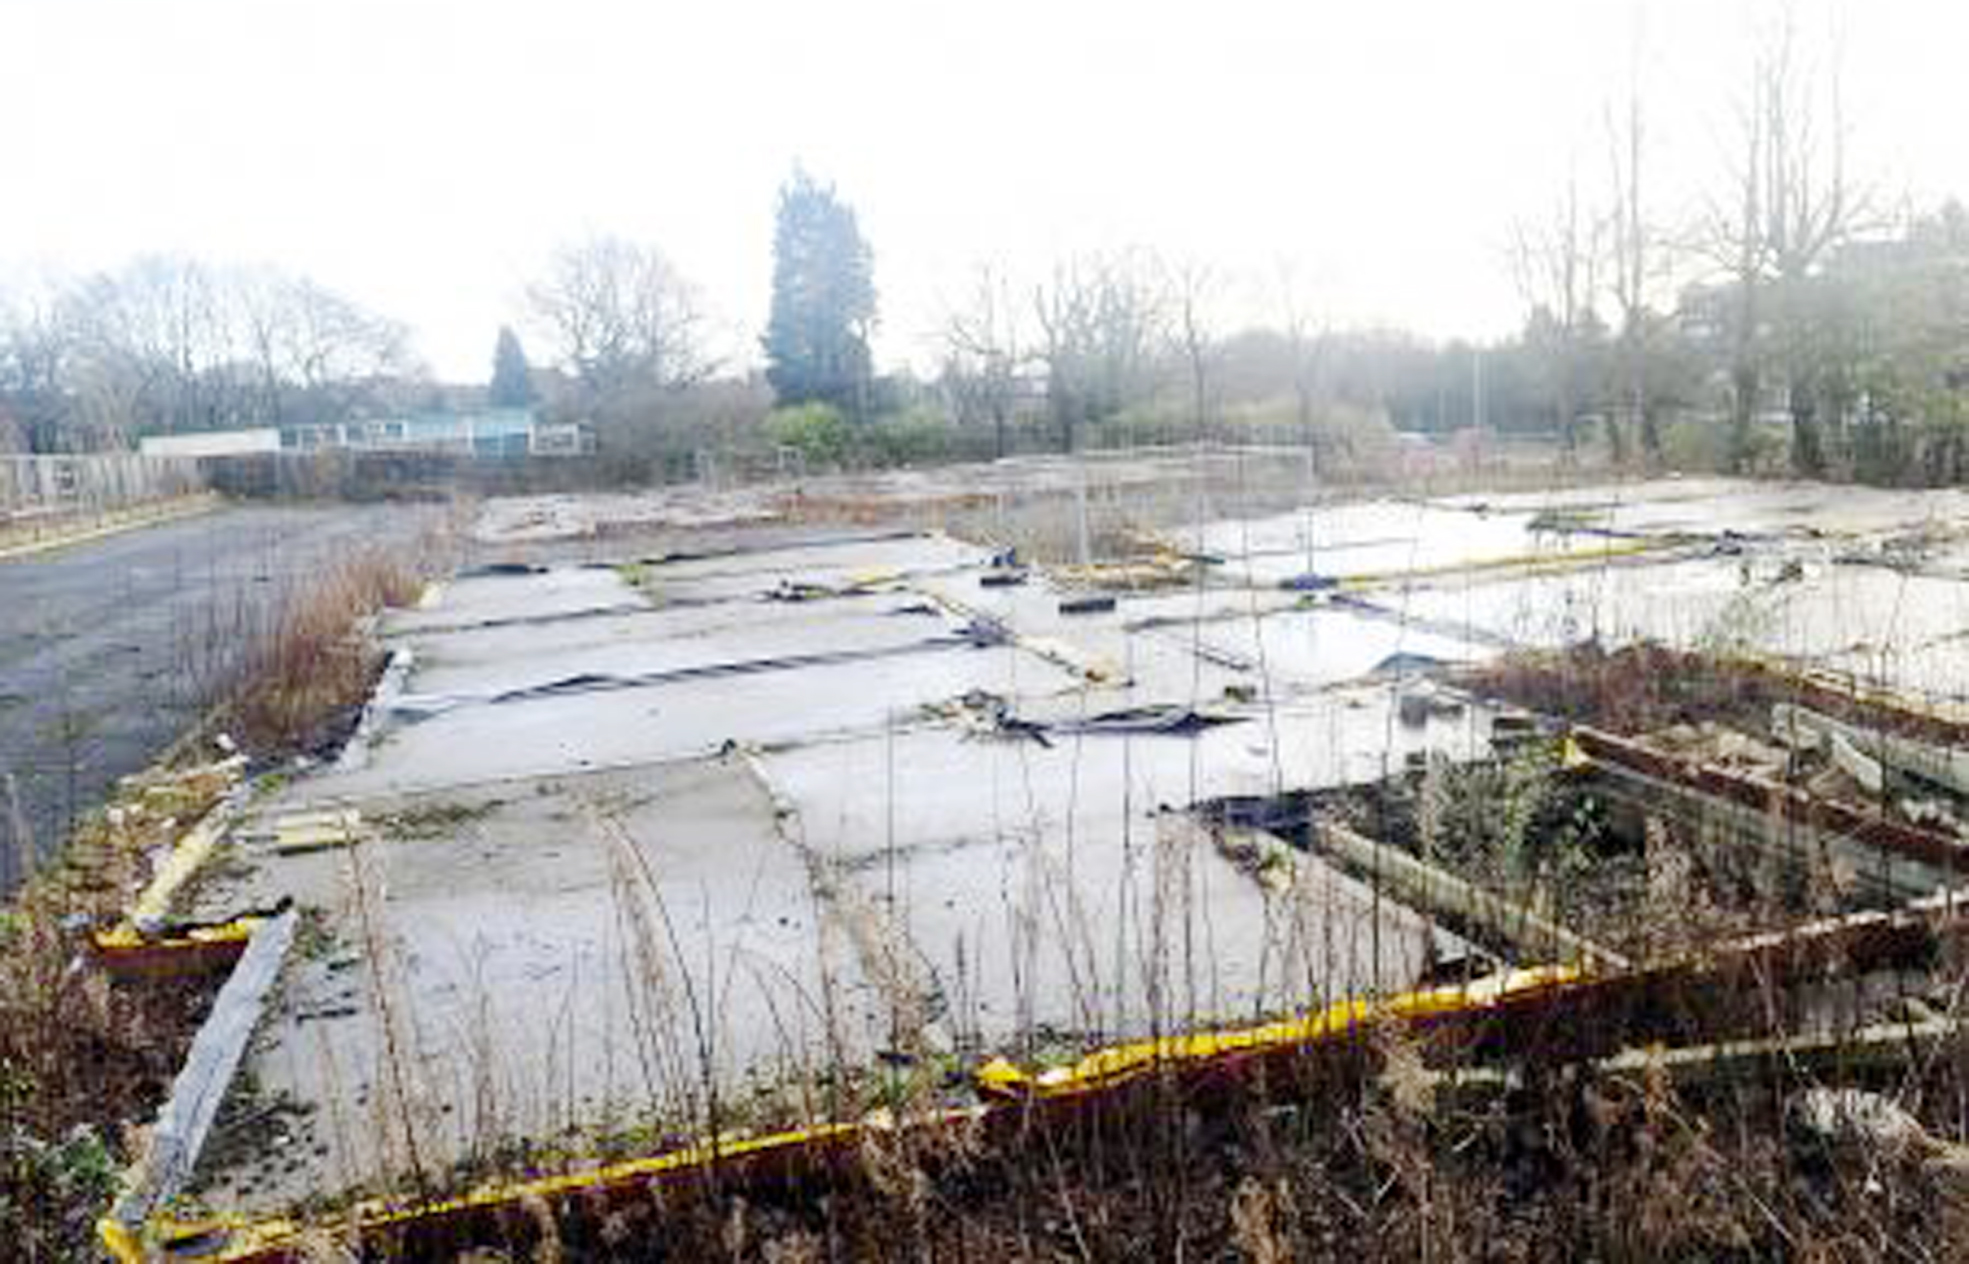 The Bolton News: The Swallowfield Hotel site in Chorley New Road, Horwich